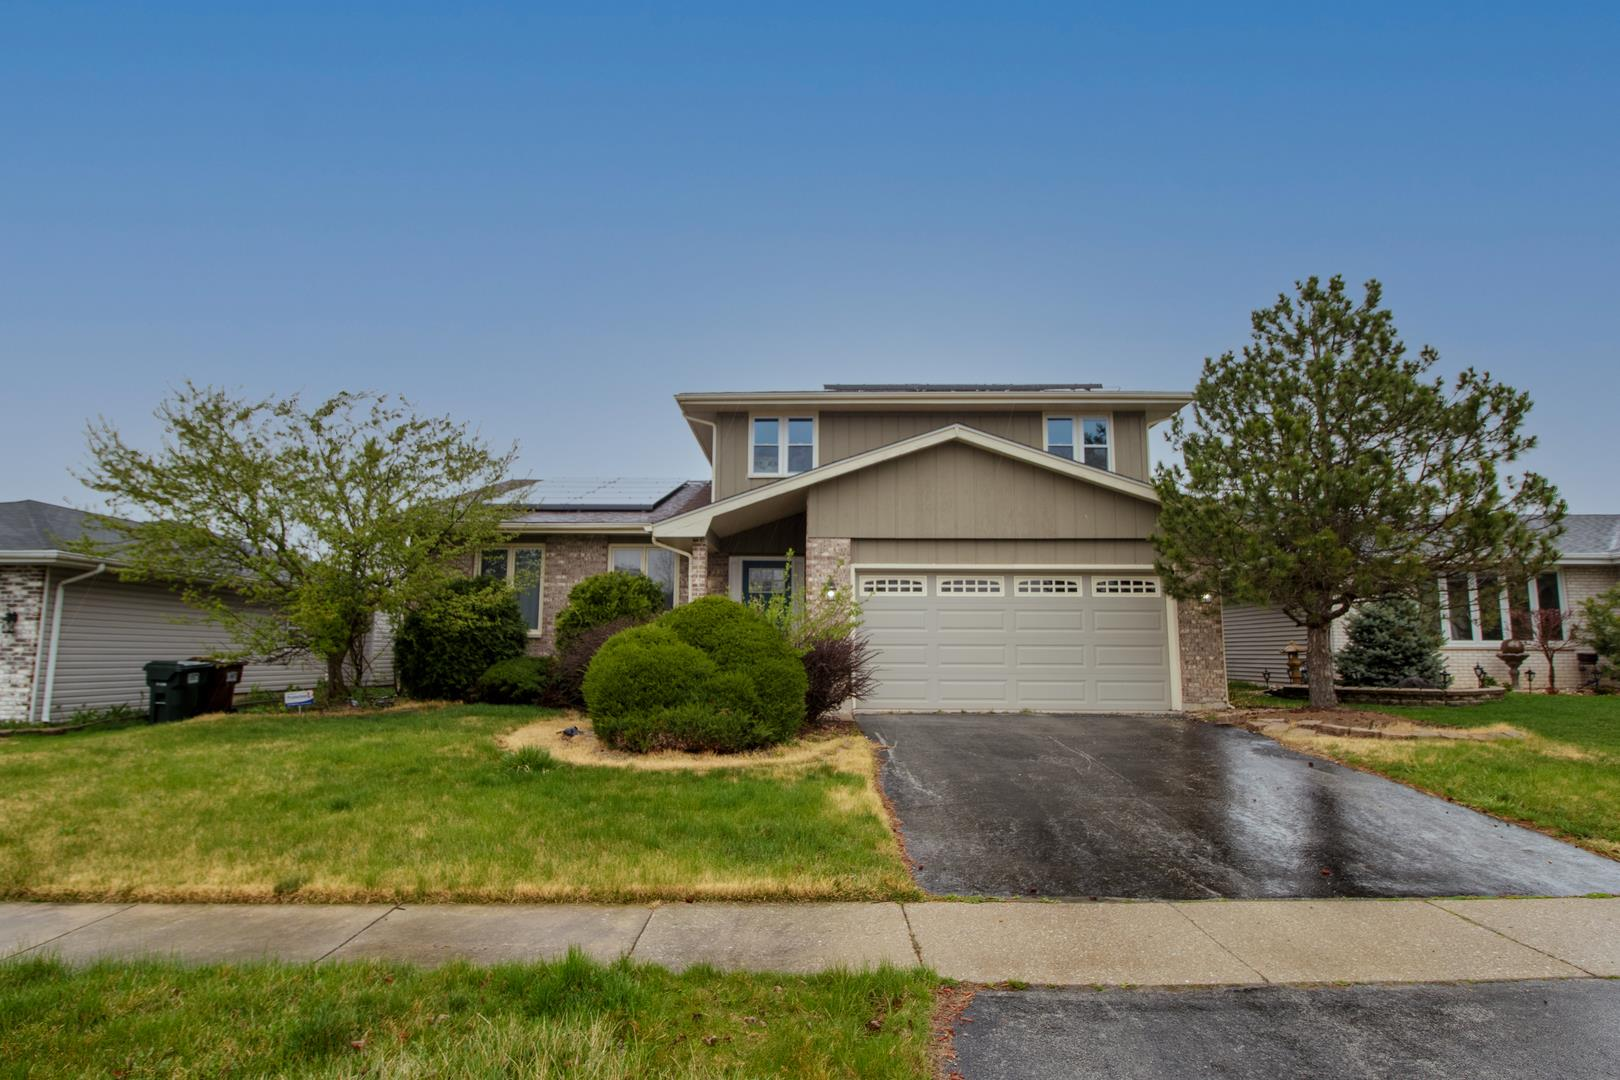 4154 177th Place, Country Club Hills, IL 60478 - #: 11051180